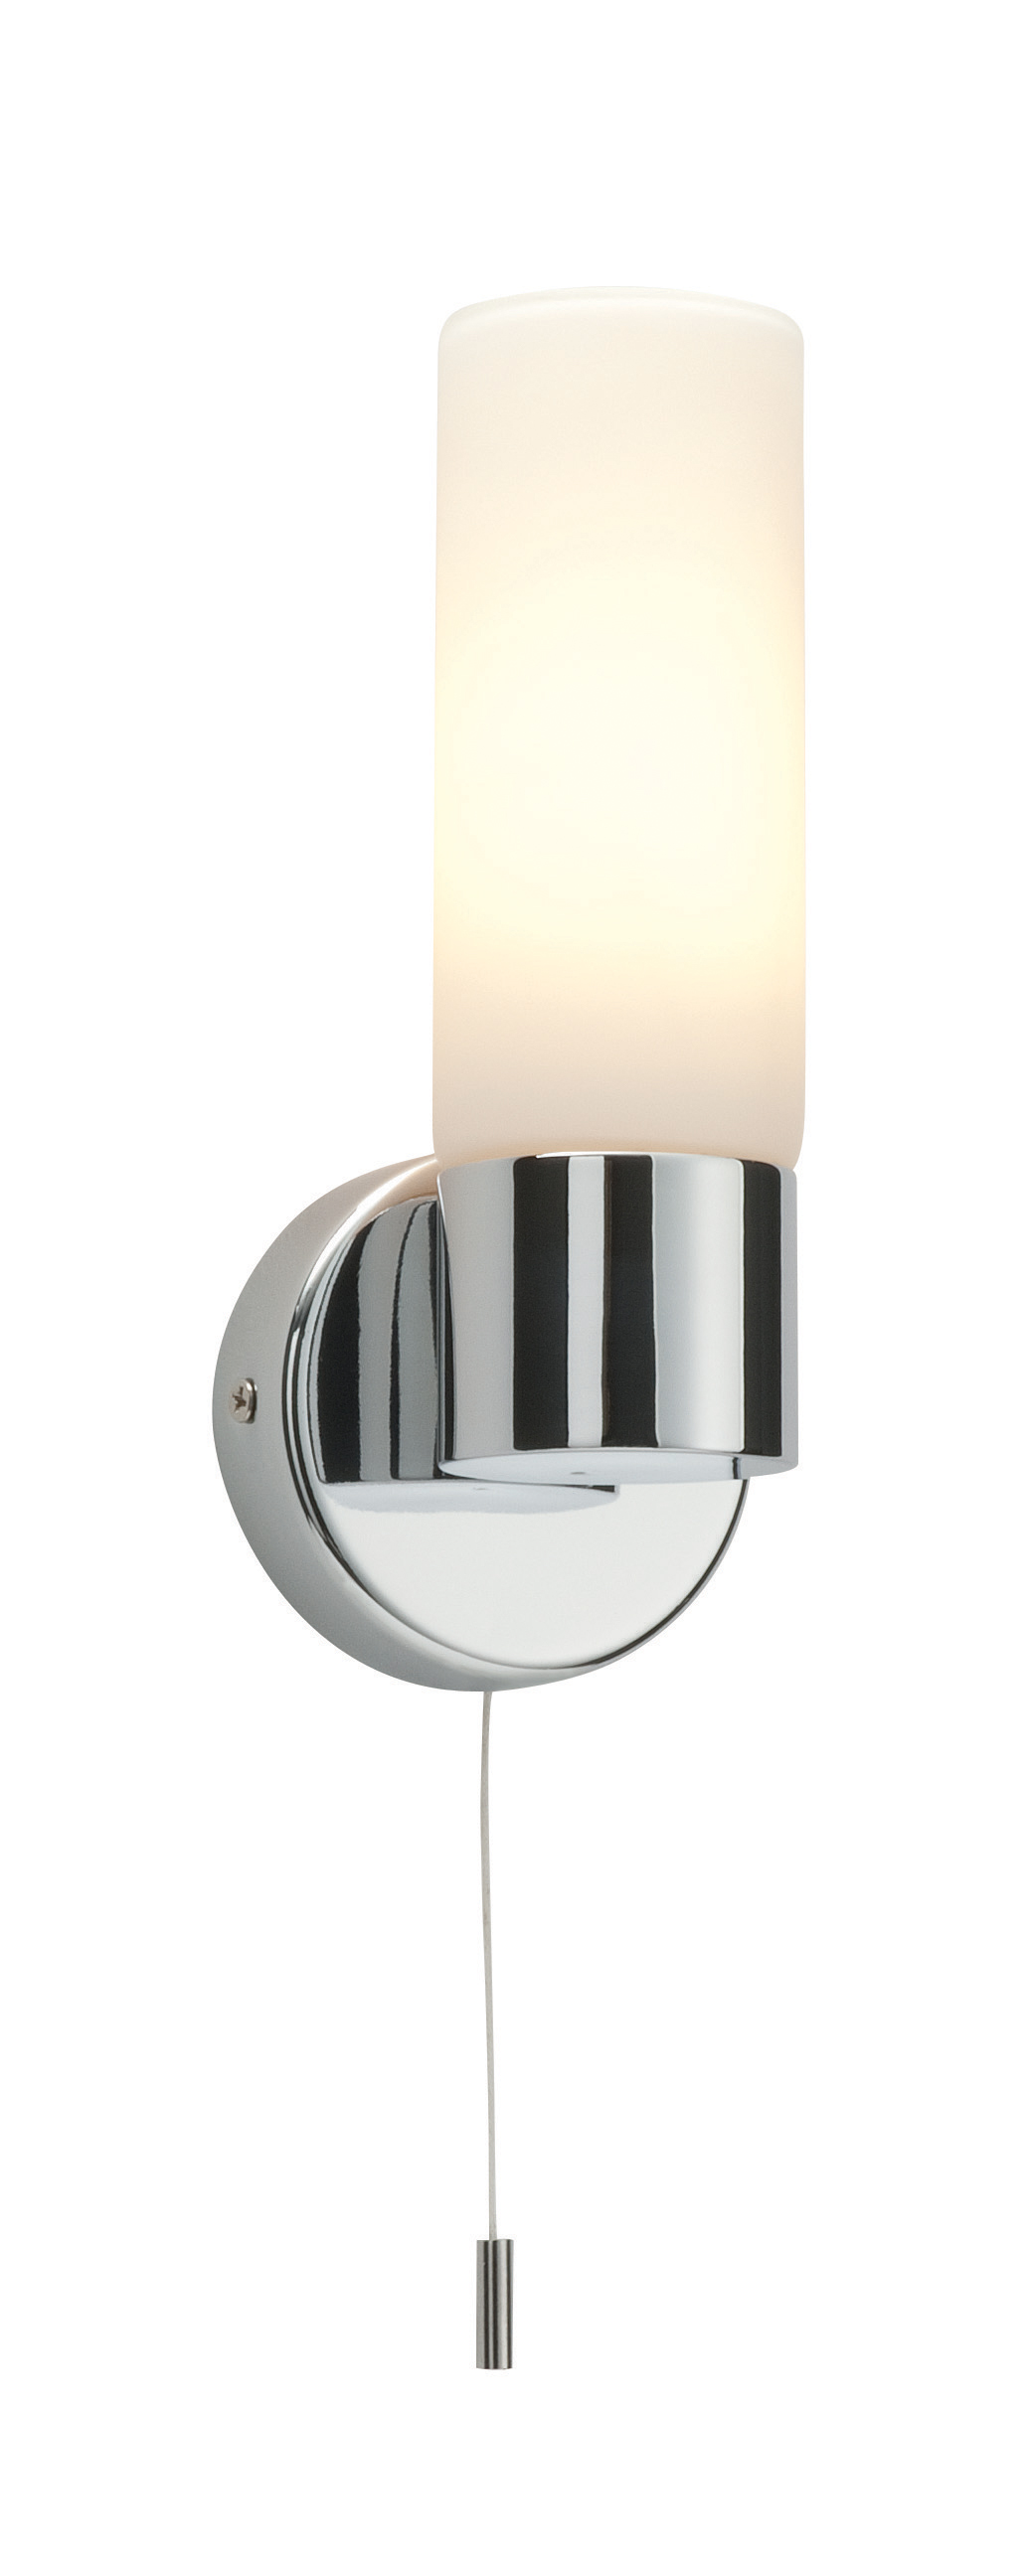 Wall Lights With Power Cord : Saxby Pure single bathroom wall light pull cord switch chrome glass 40W E14 eBay